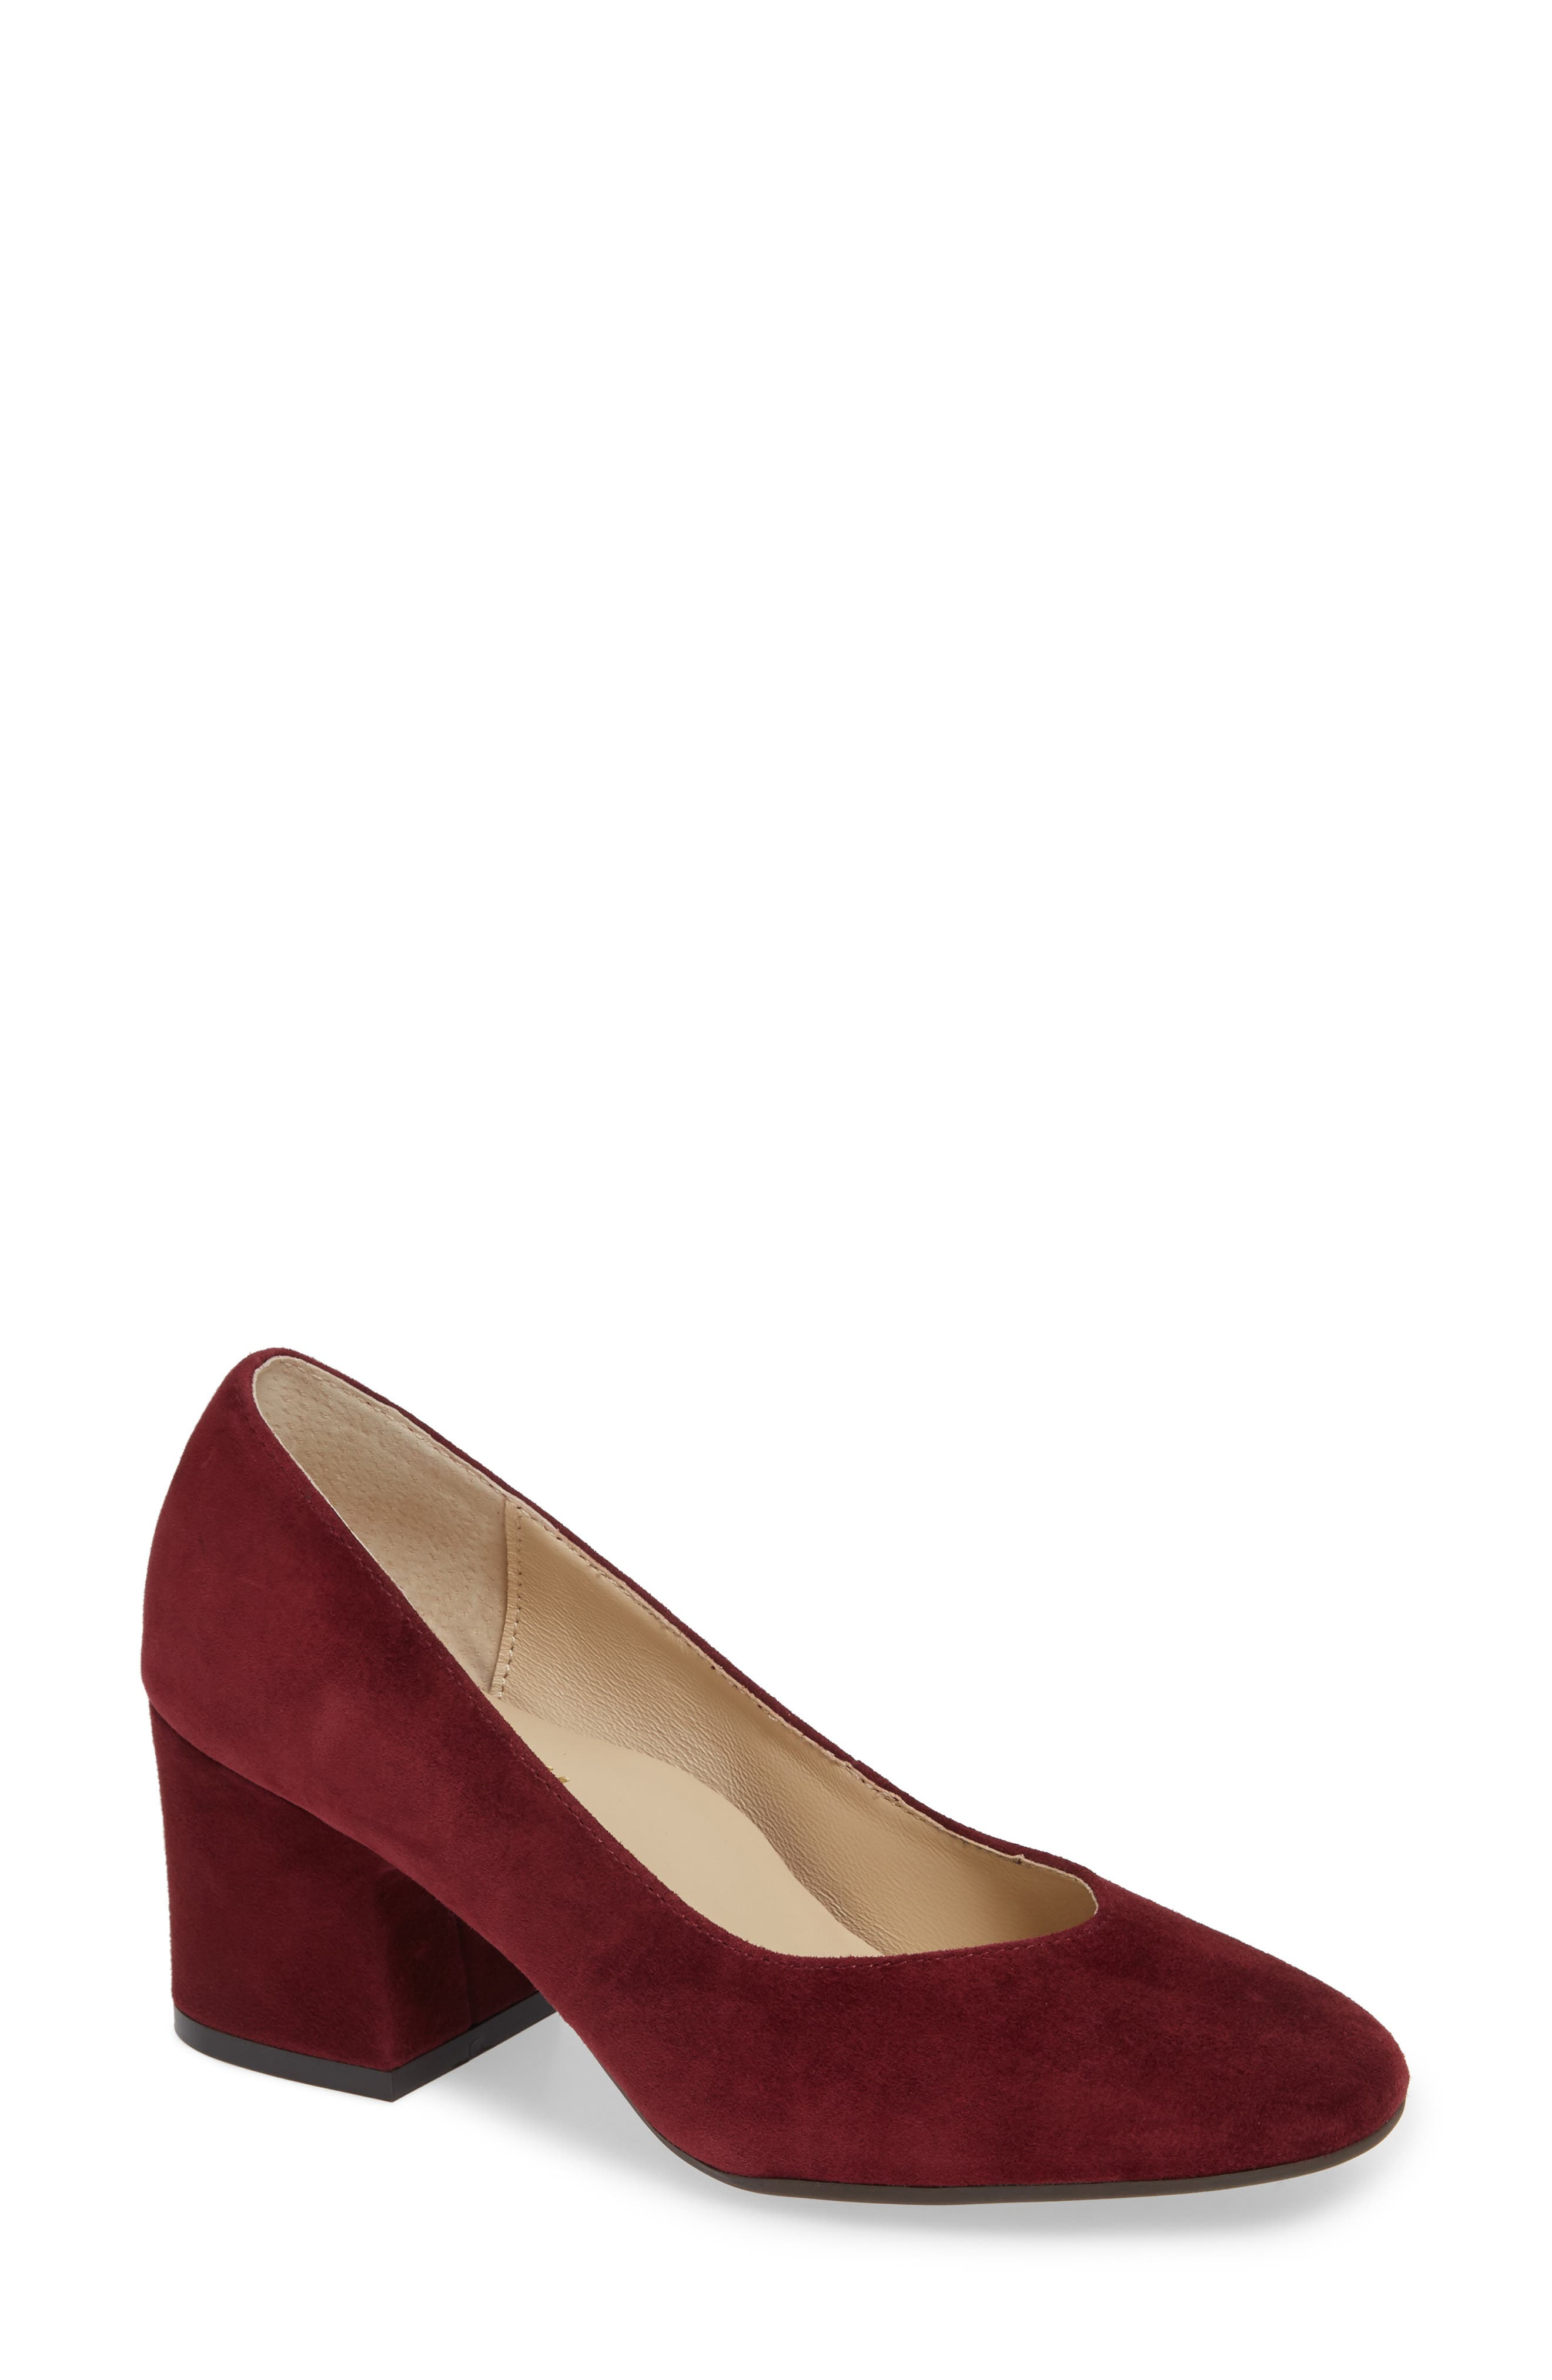 Bettye Muller Concepts Genny Pump, Red